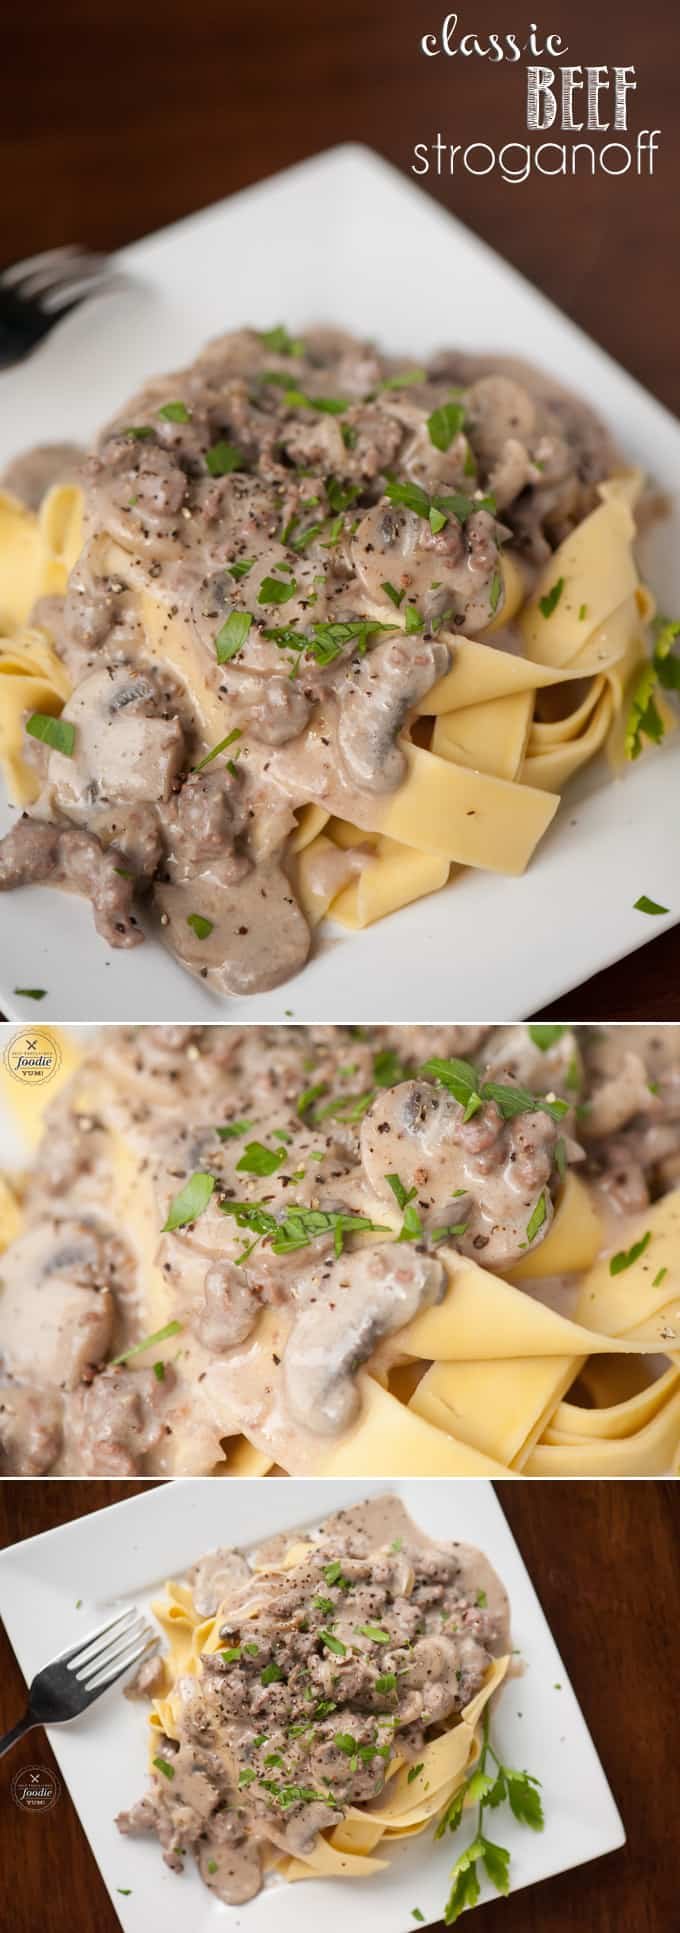 Classic Beef Stroganoff with fresh mushrooms & onion, beef sirloin steak, a creamy sour cream sauce served over egg noodles is the ultimate comfort food a family dinner time favorite!#beefstroganoff #beef #sirloinsteak #mushroom #mushroomsauce #easybeefstroganoff